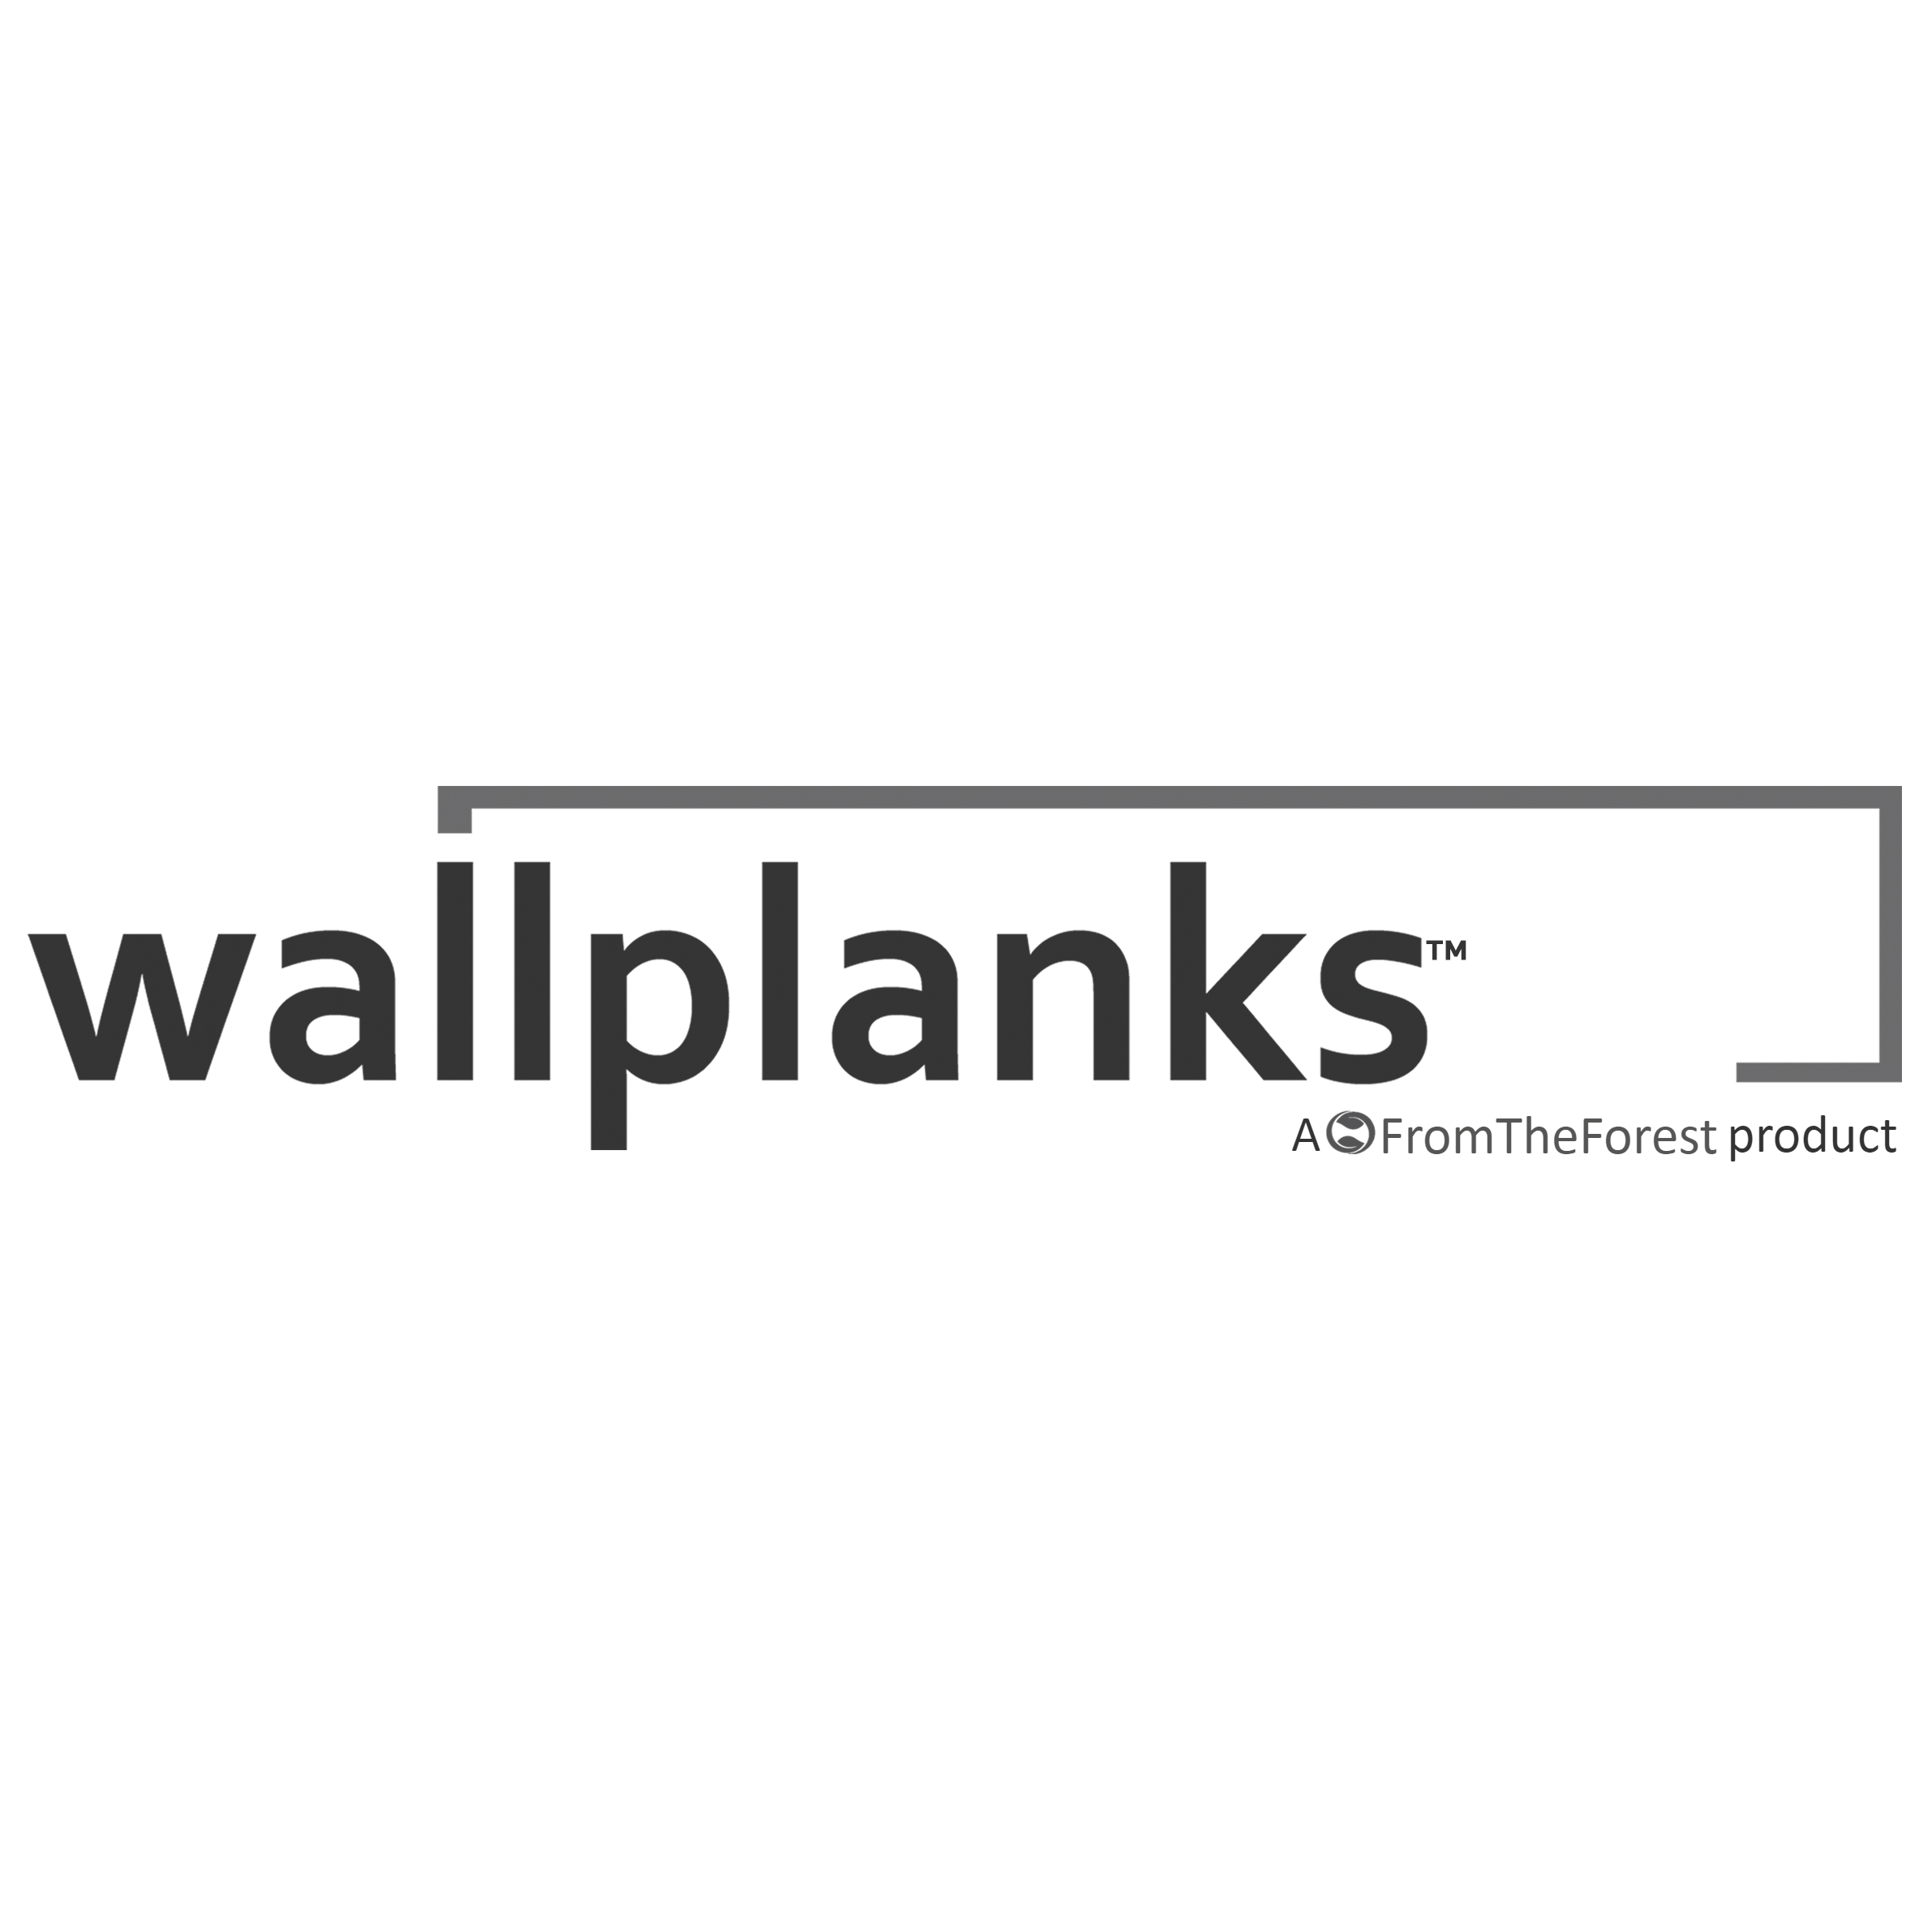 Wallplanks - a From The Forest Product - WESTON, WI - Home Accessories Stores